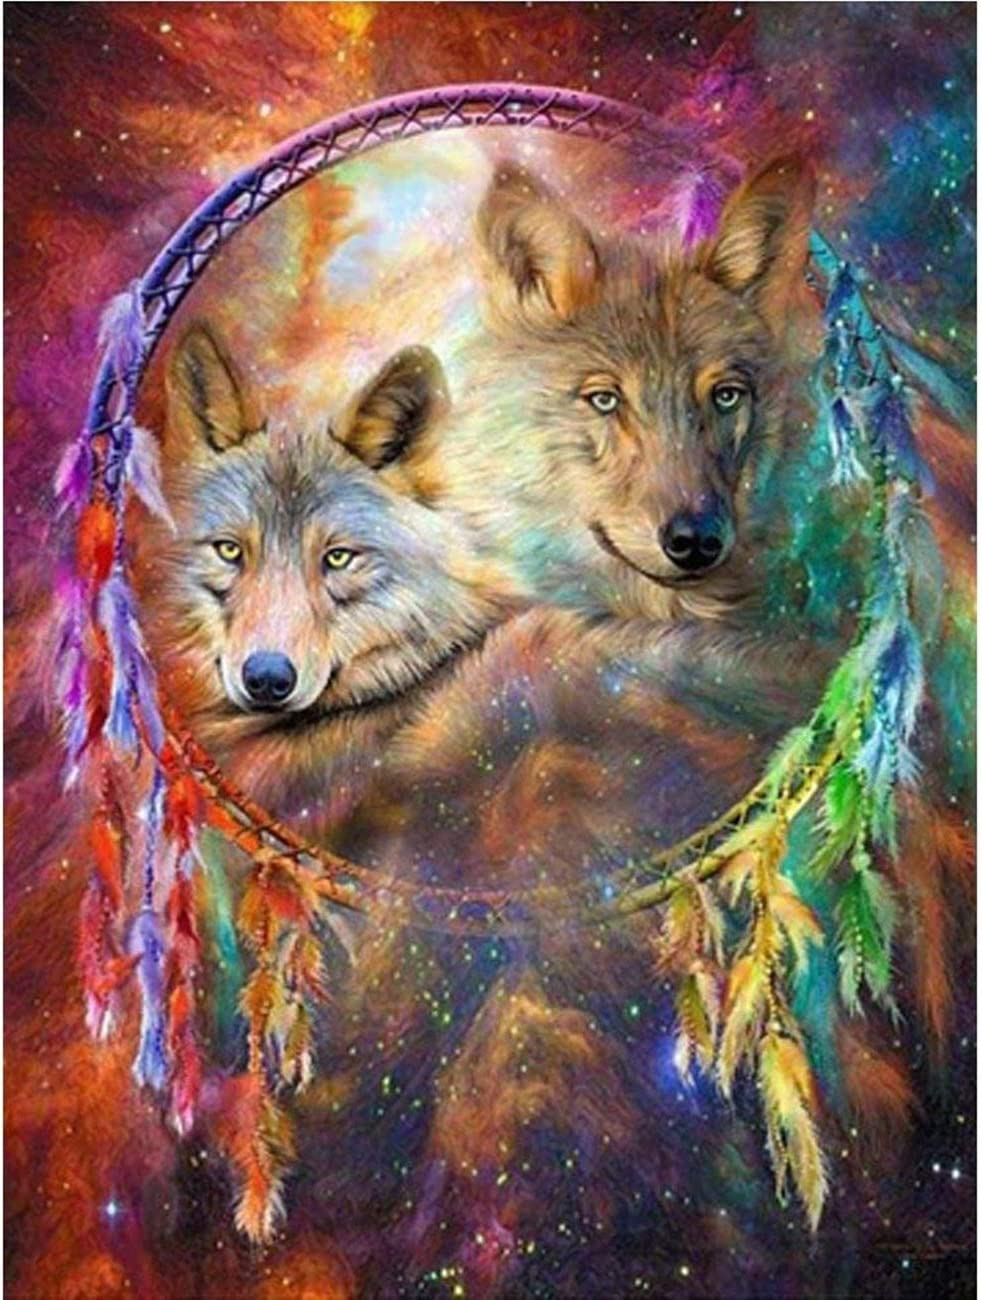 DIY Diamond Max 43% OFF Painting Kits for Wolves Dreamcatcher D Max 62% OFF Full Adults